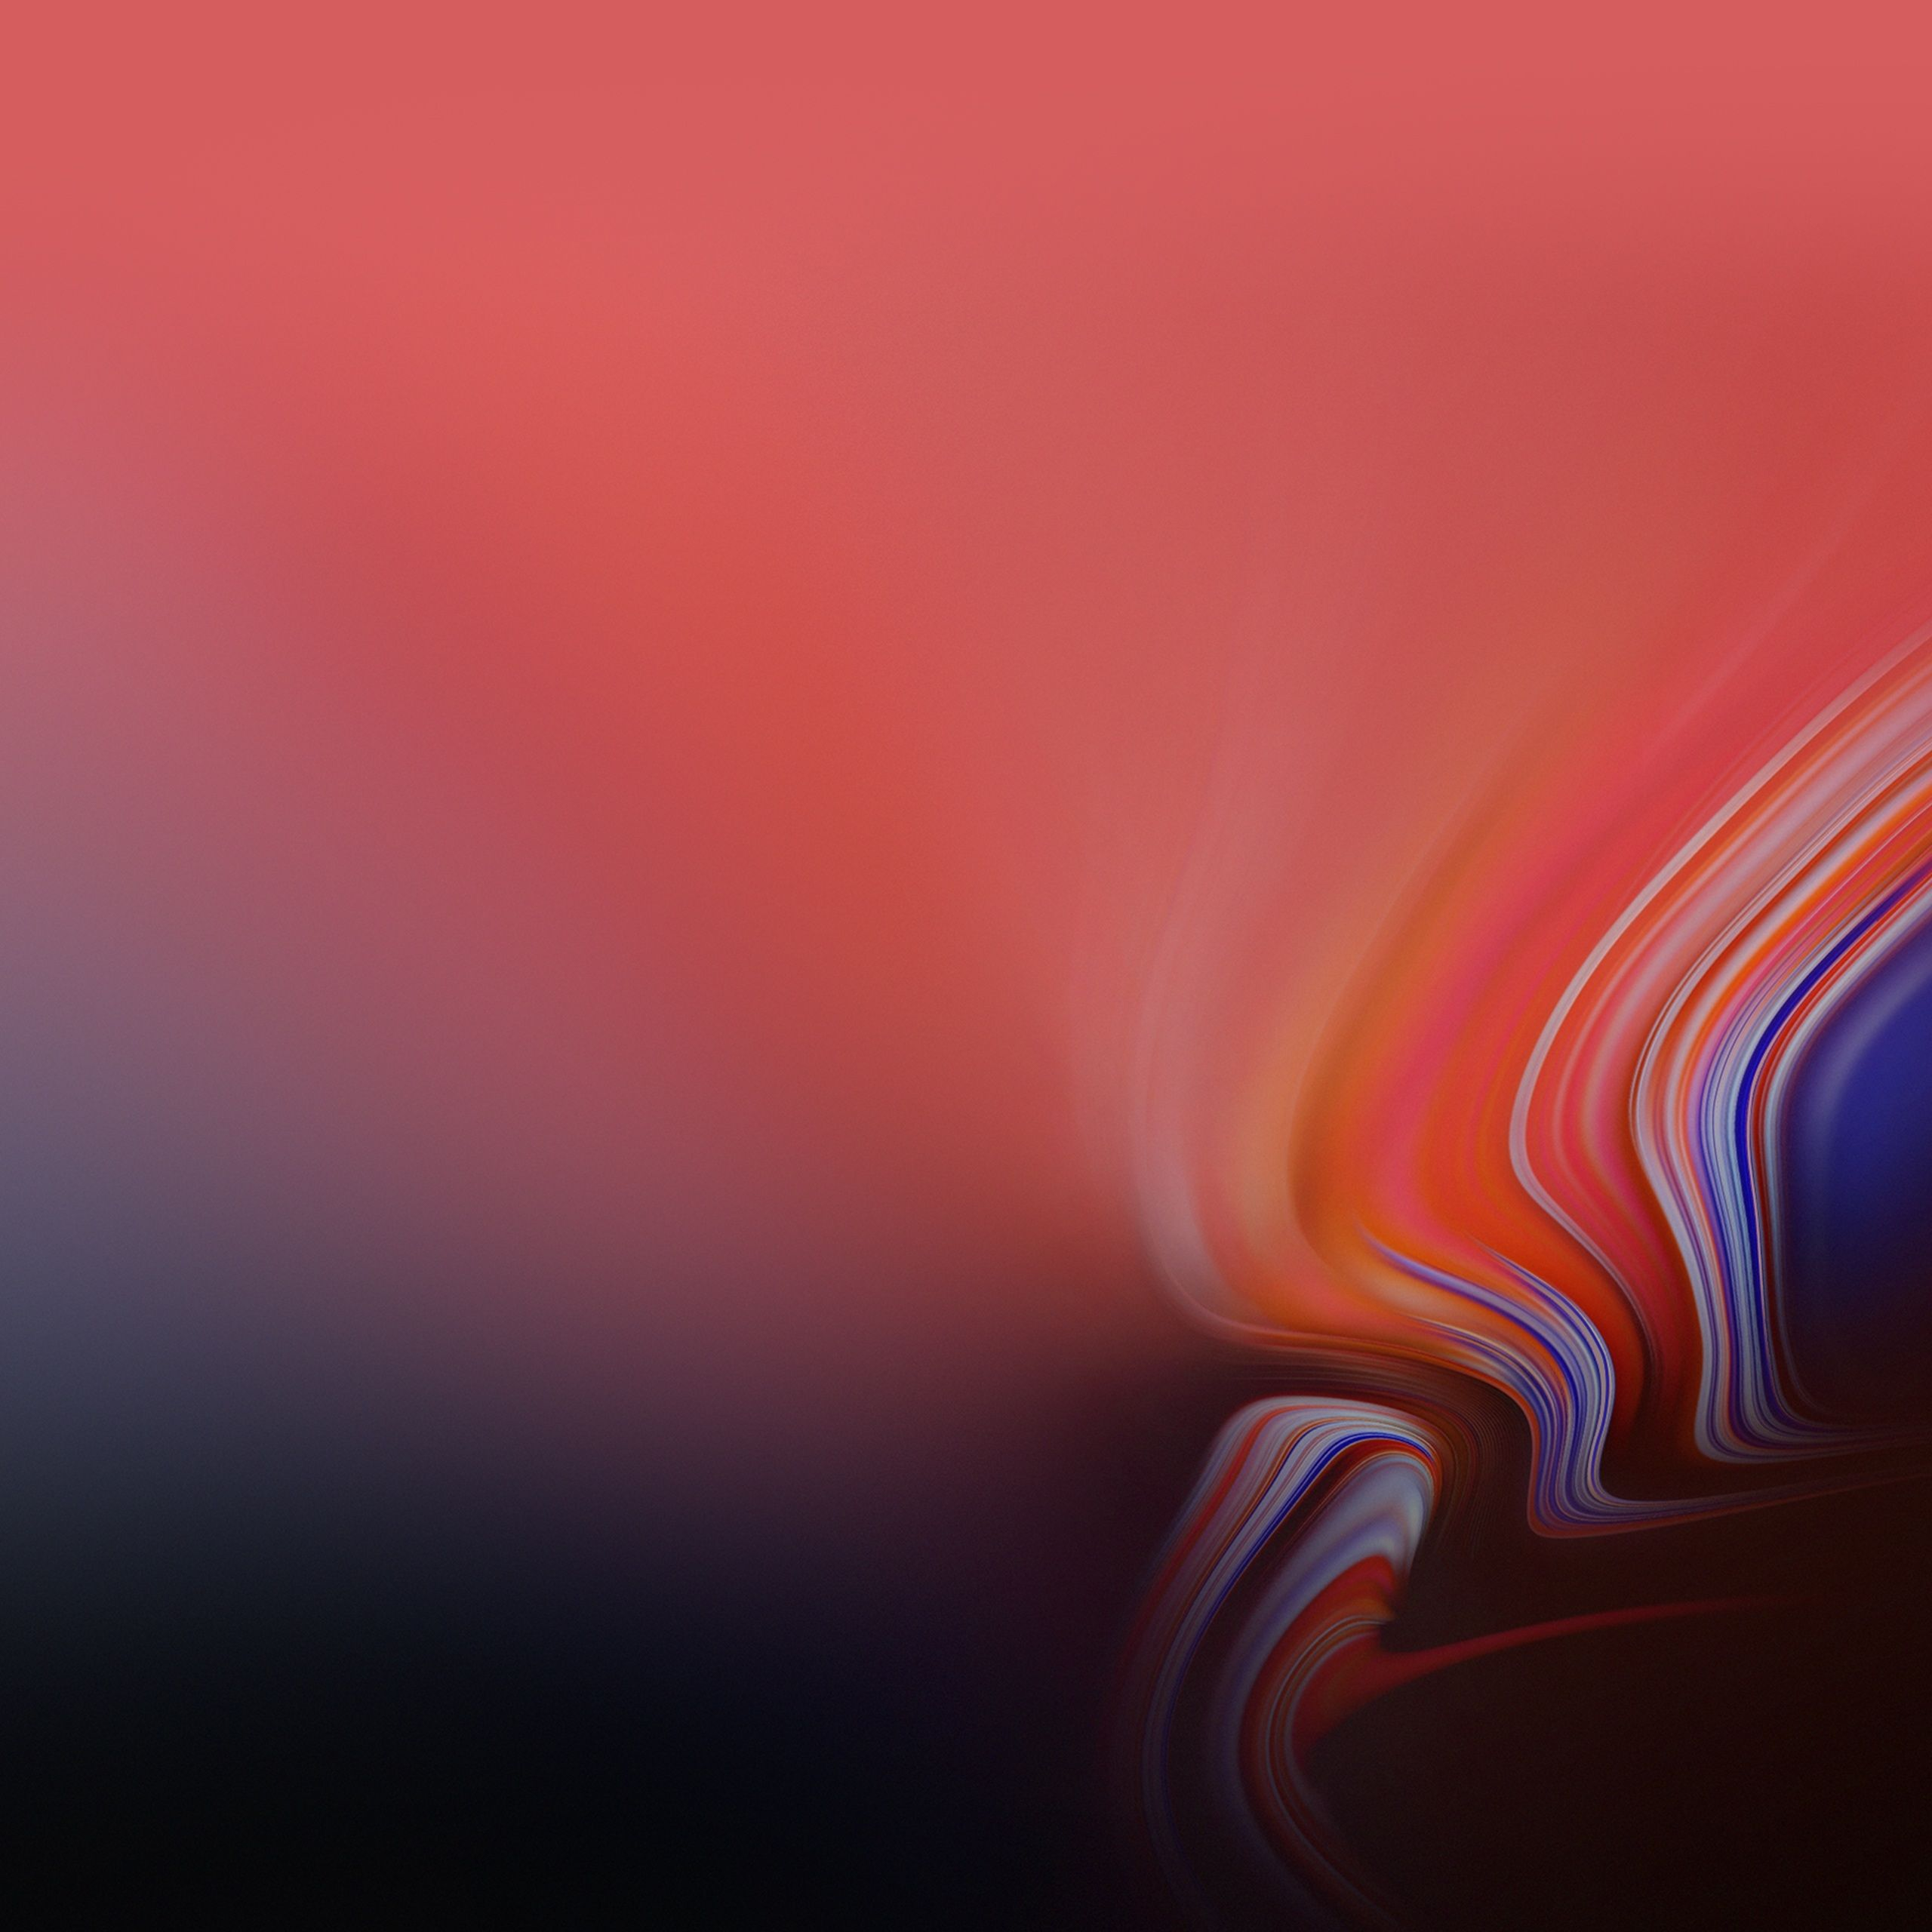 Samsung Galaxy Note 9 Stock Wallpapers Official Qhd Quality Posting